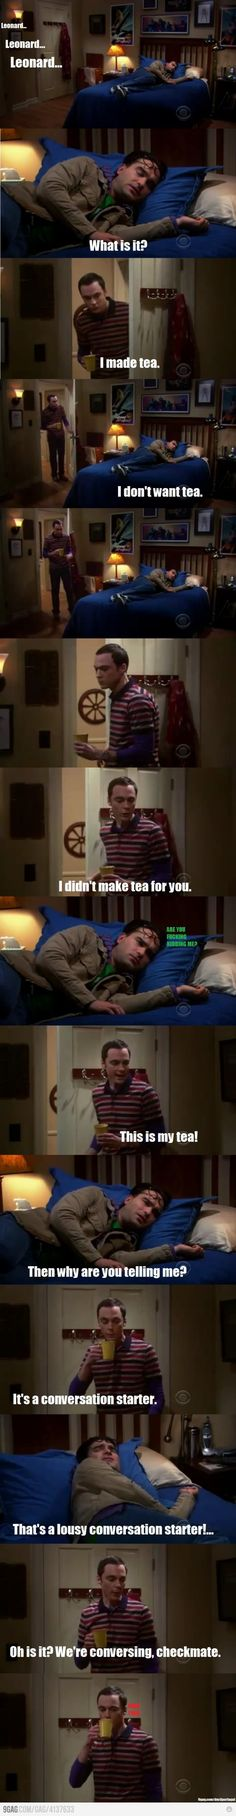 Sheldon being... Sheldon...